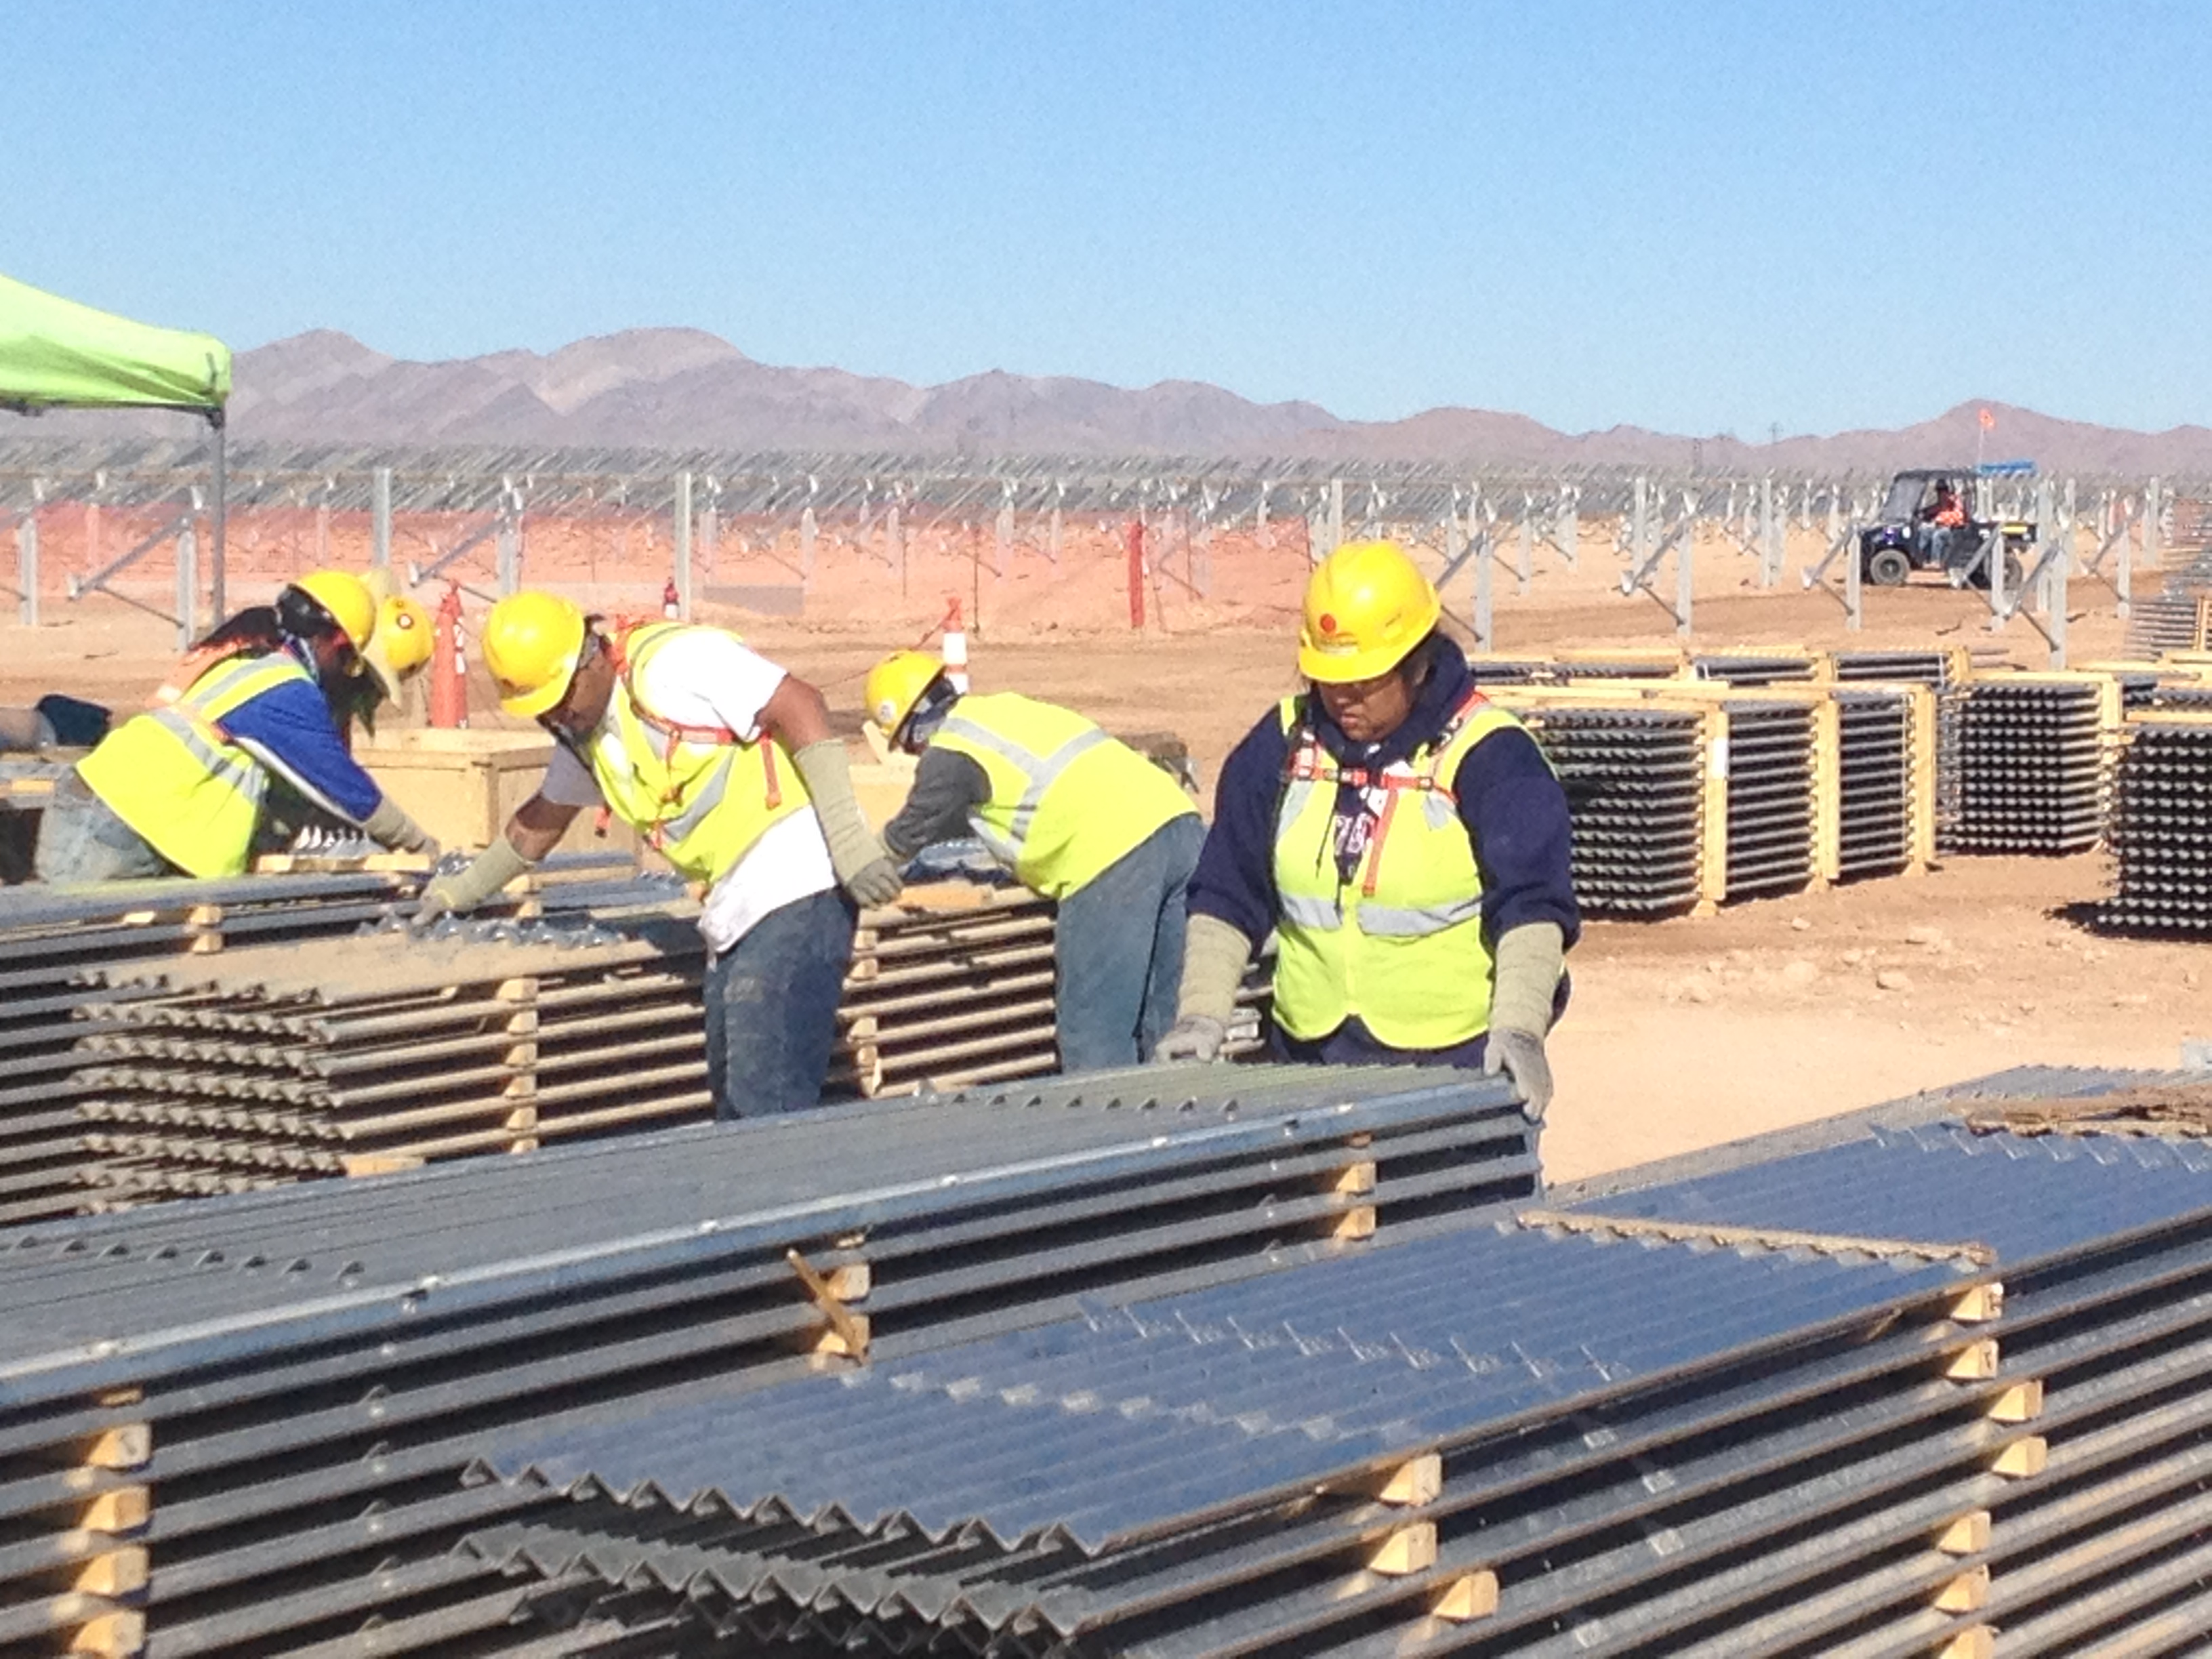 Workers install 250-MW solar project on the Moapa Indian River Reservation in southern Nevada